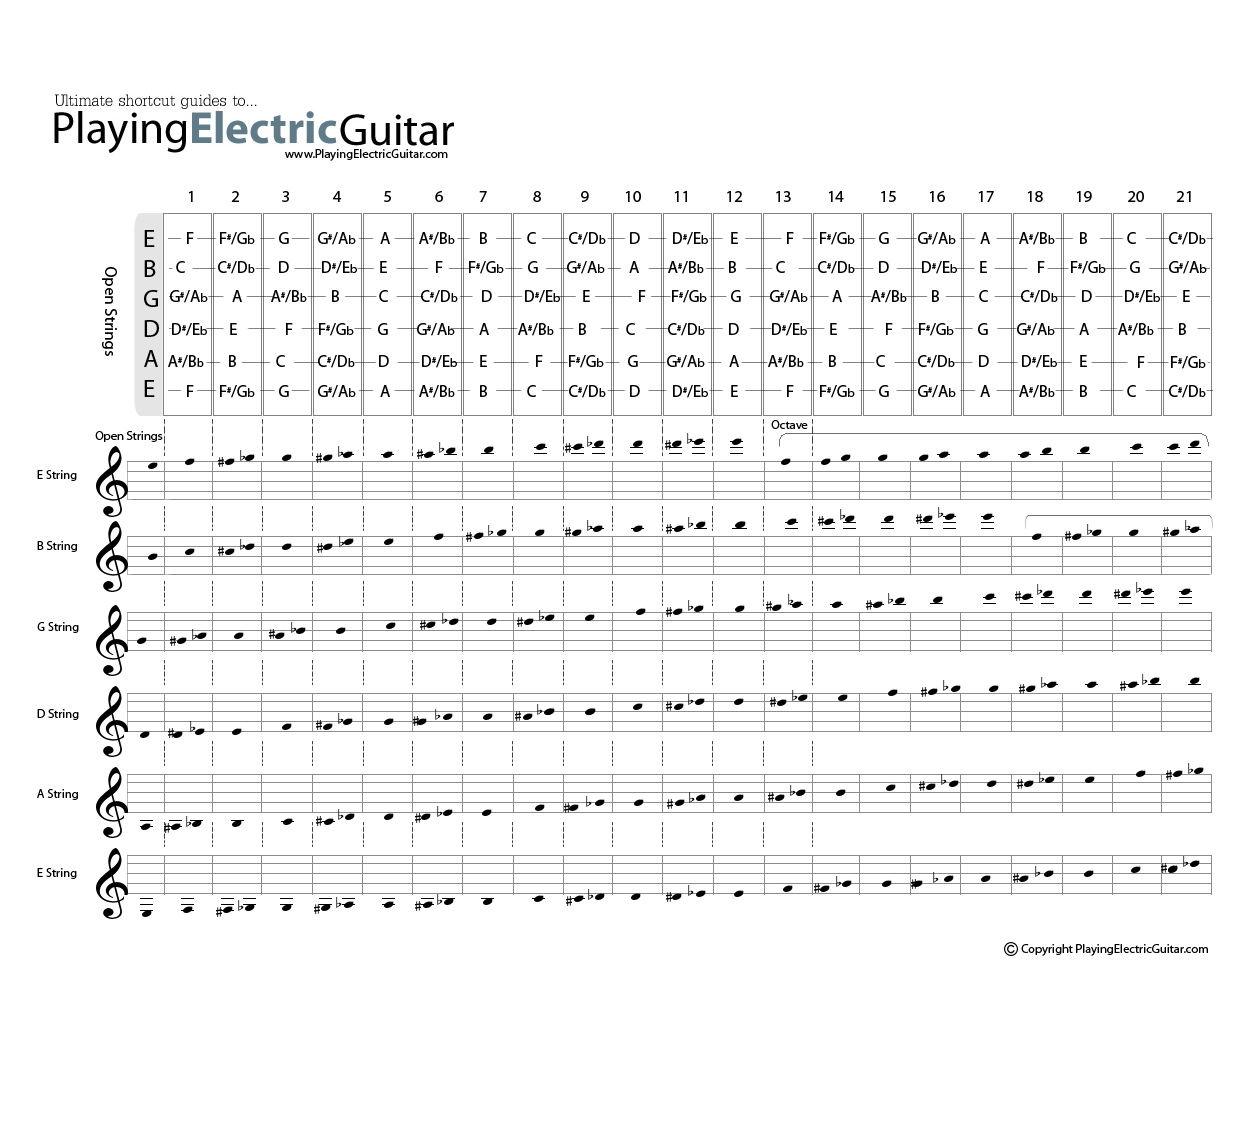 hight resolution of guitar fretboard chart from playingelectricguitar com